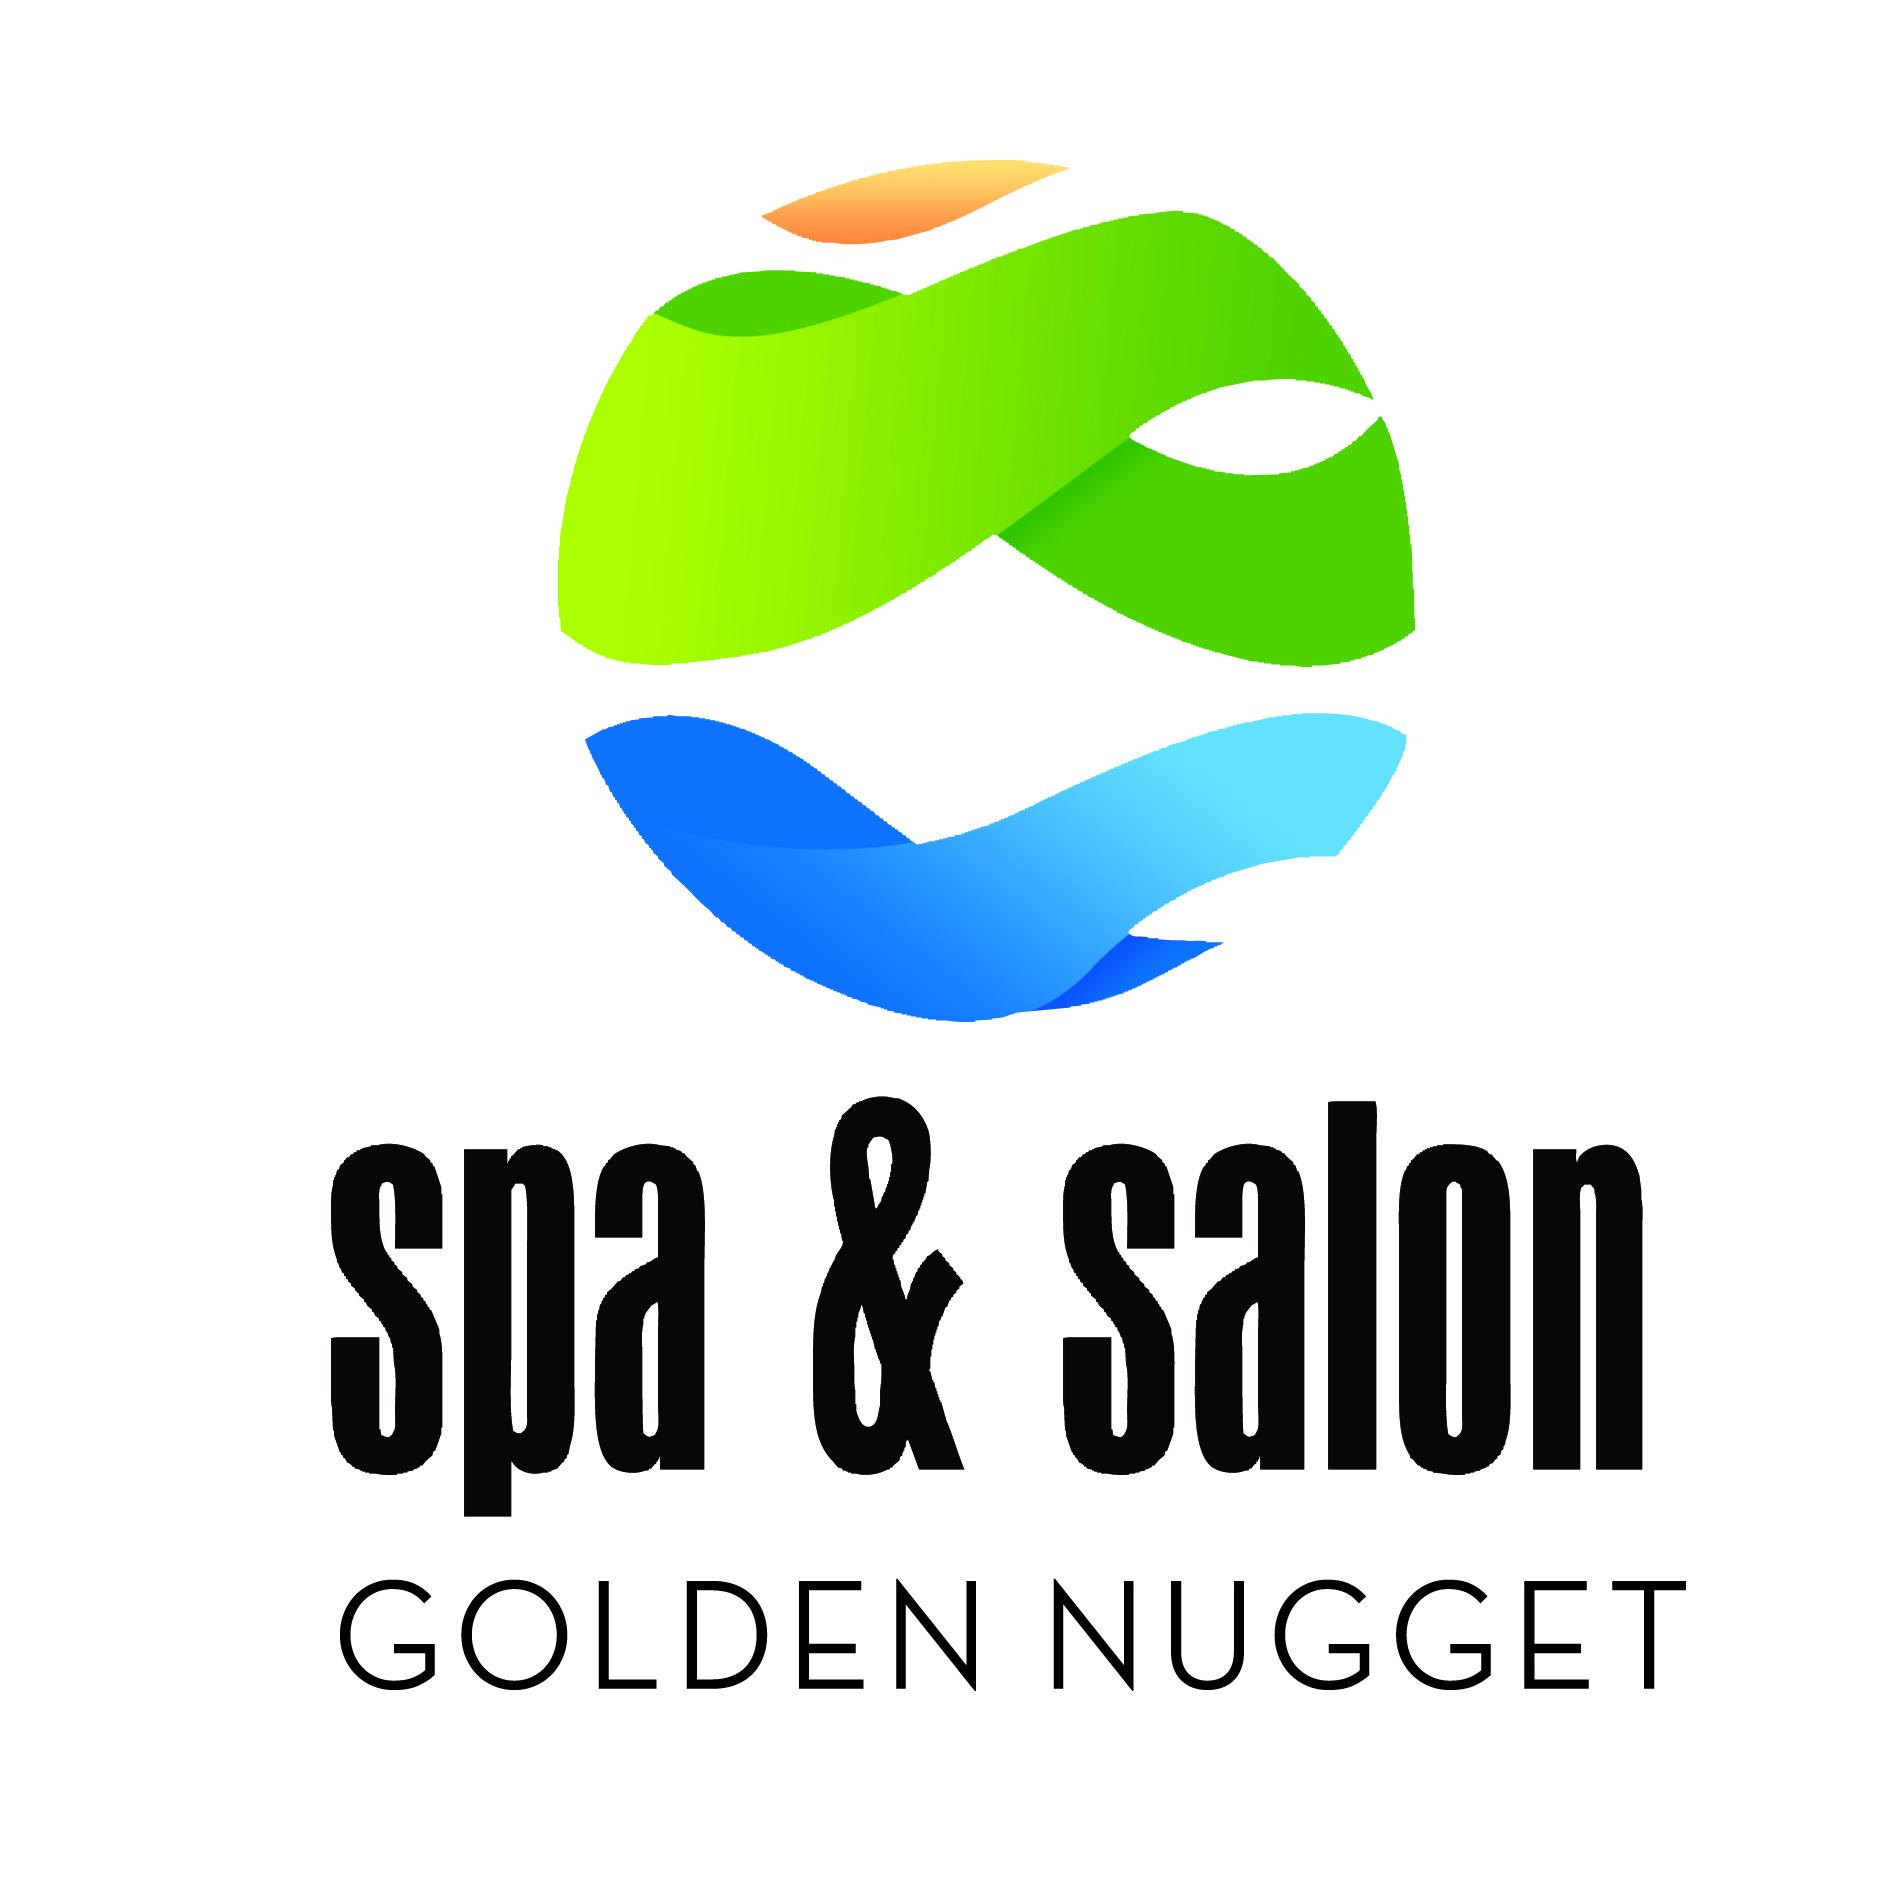 The Spa & Salon